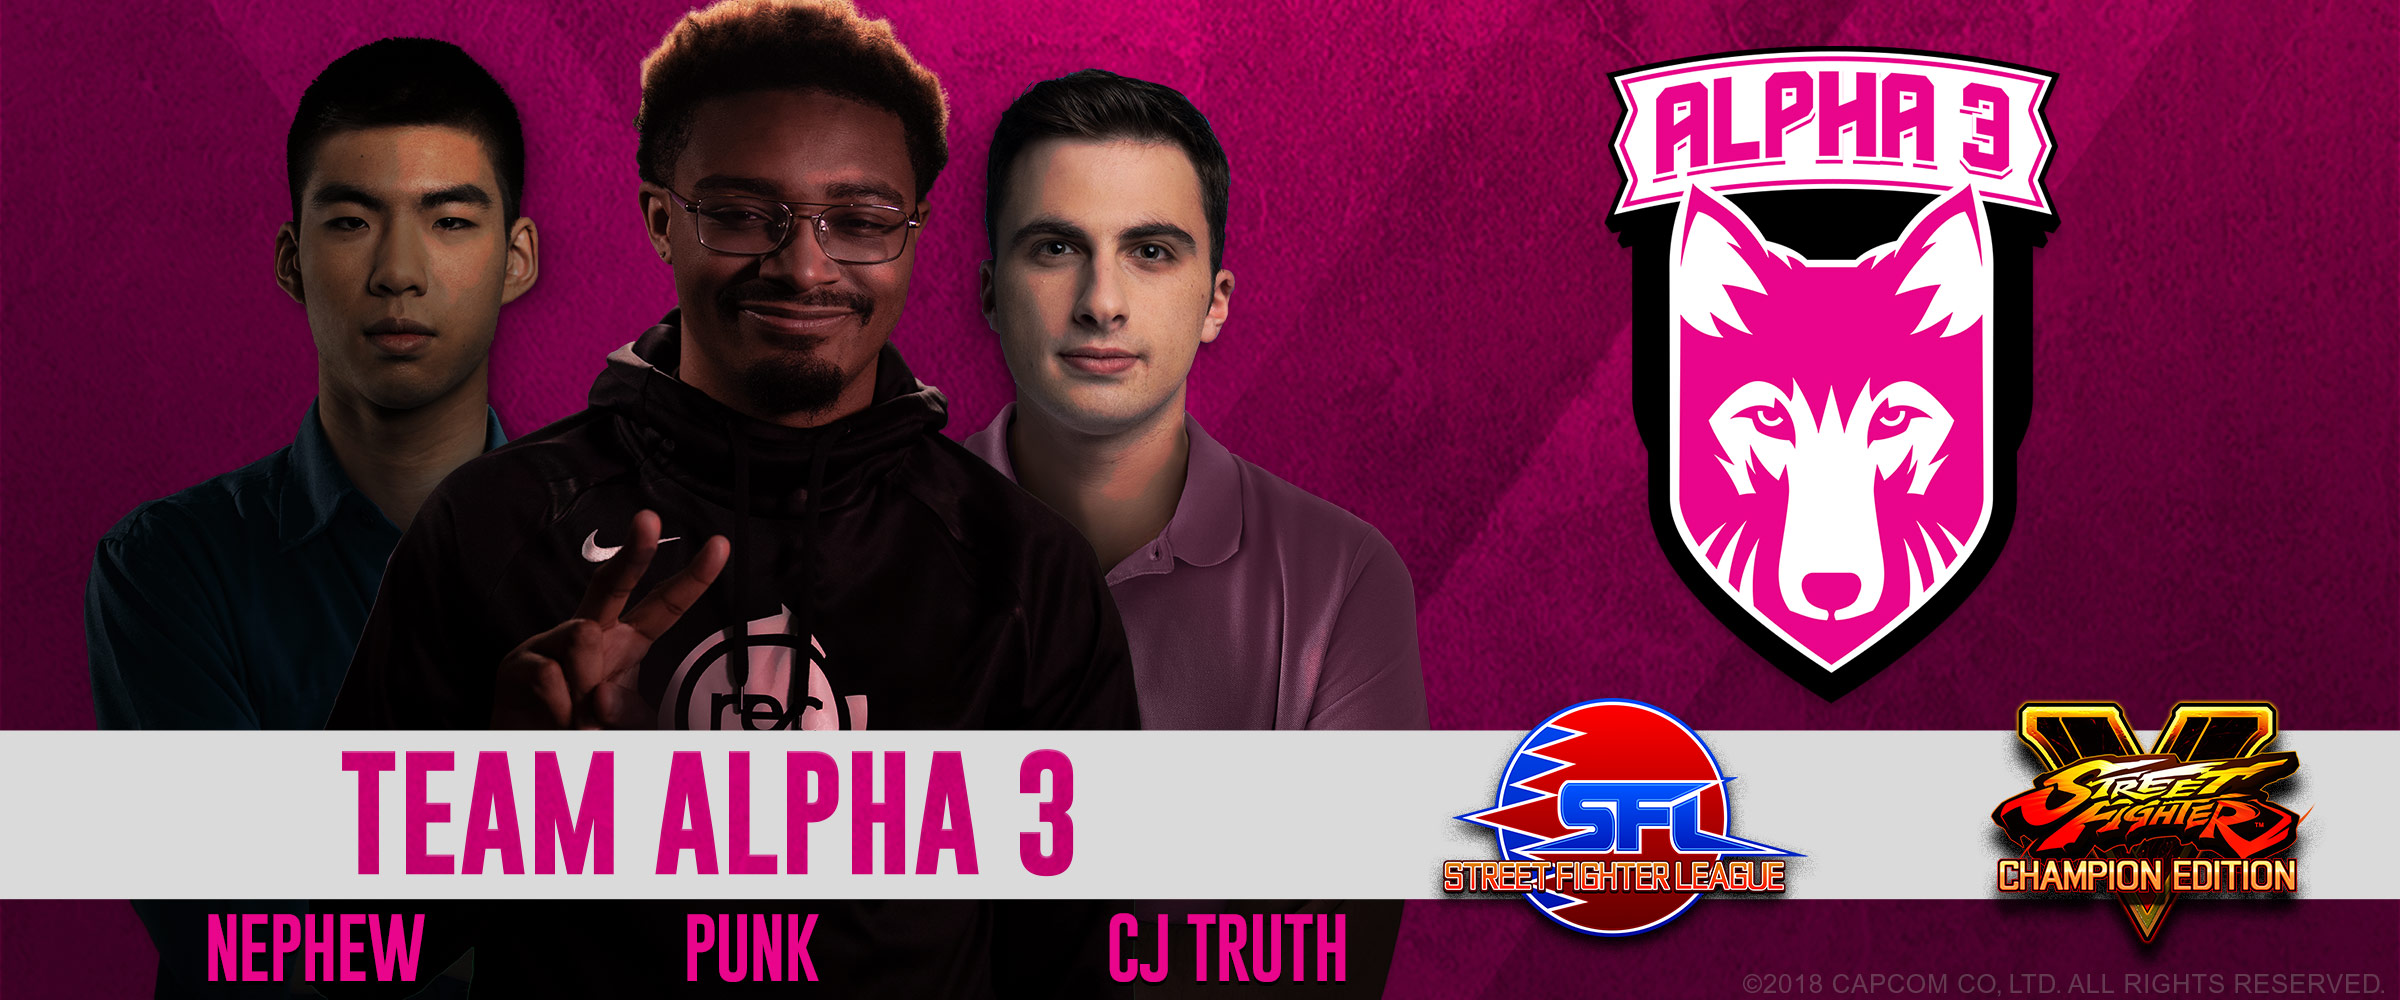 Introducing Team Alpha 3